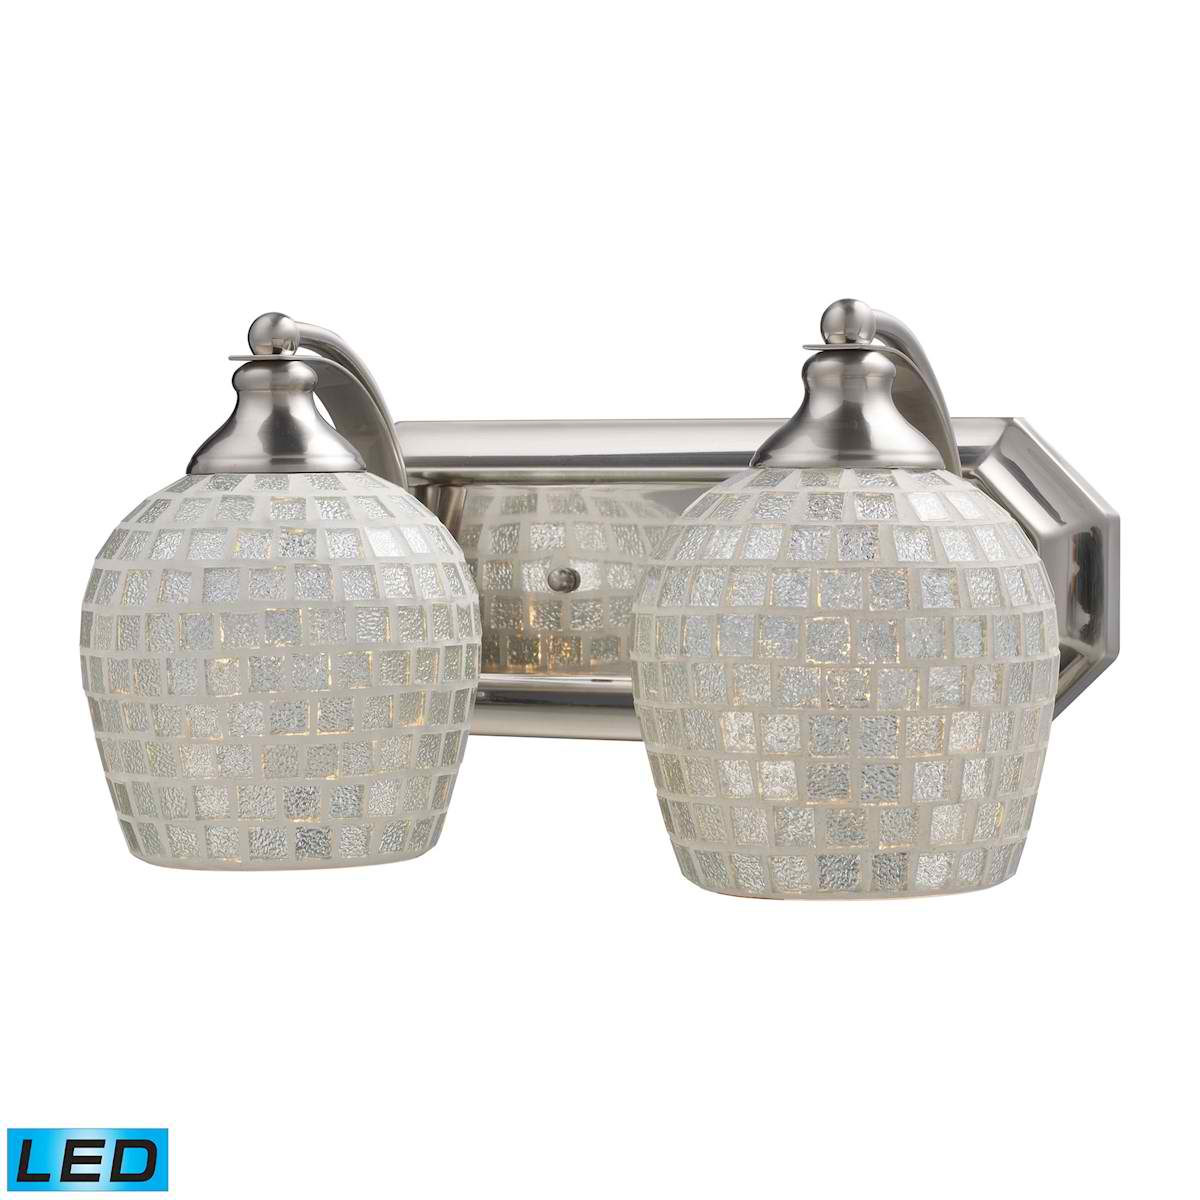 2 Light Vanity in Satin Nickel and Silver Mosaic Glass - LED, 800 Lumens (1600 Lumens Total) with Full Scale